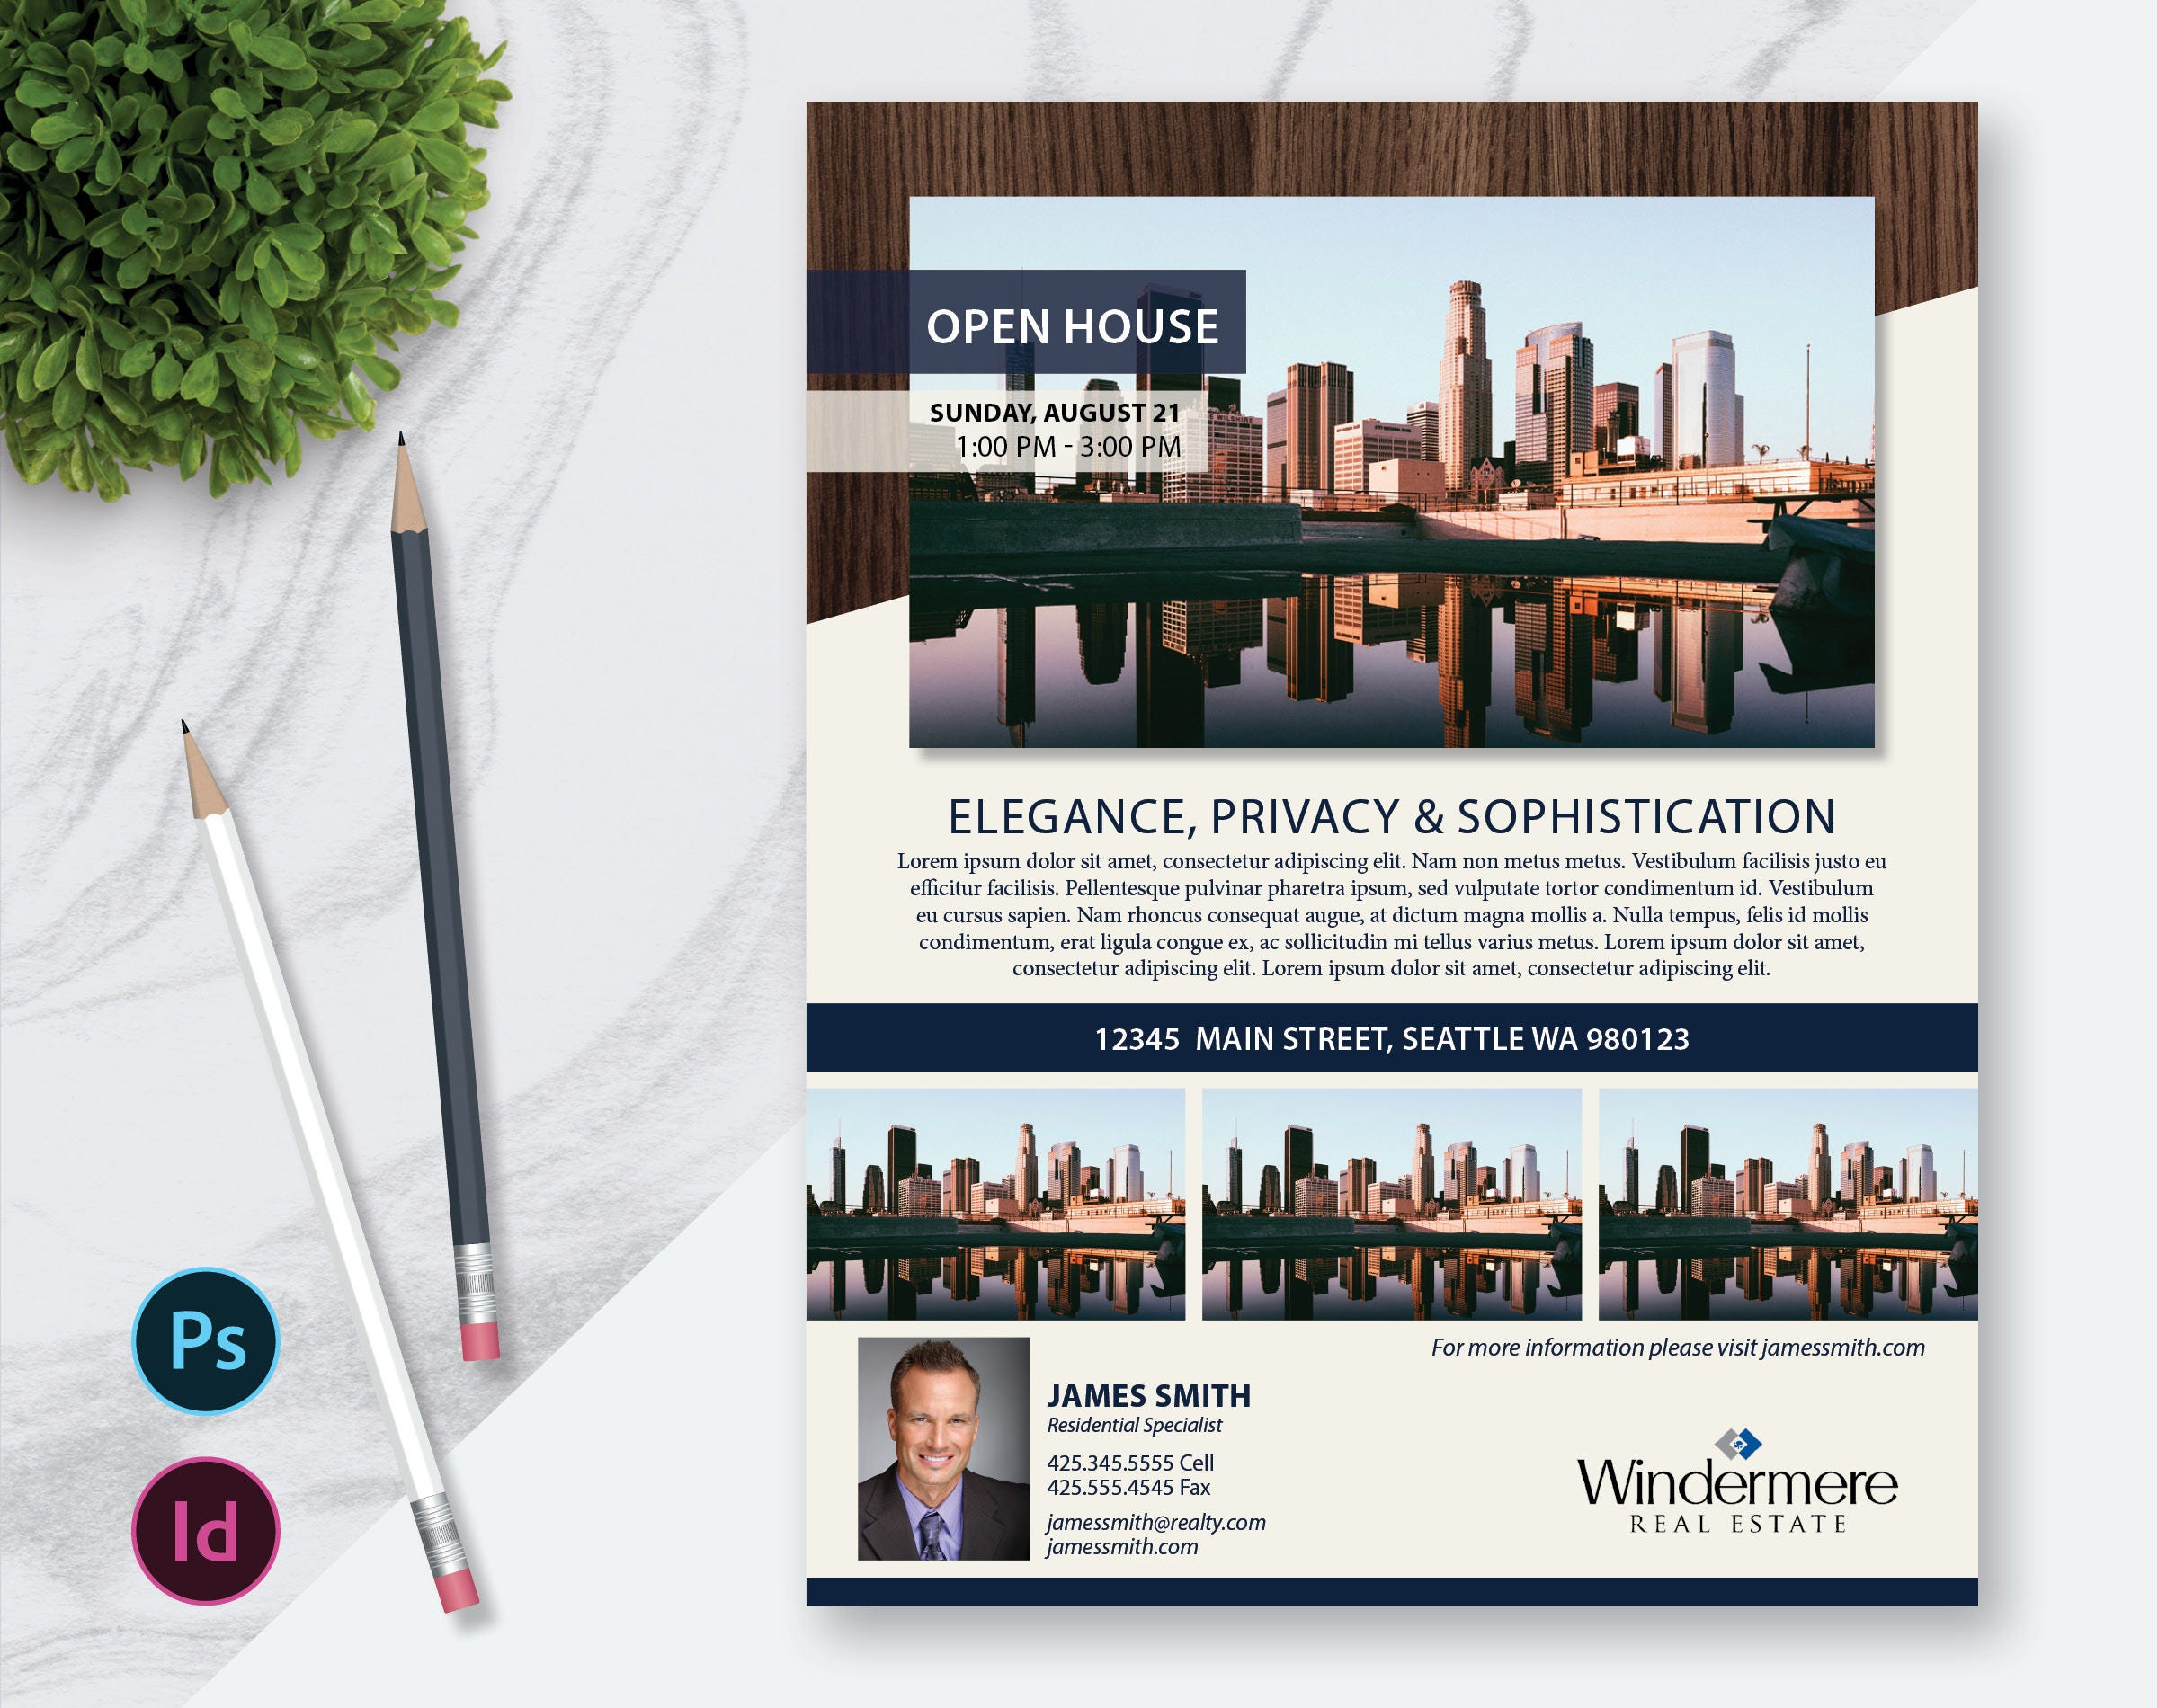 Real Estate Flyer Template Photos Single Sided InDesign - Photoshop real estate flyer templates